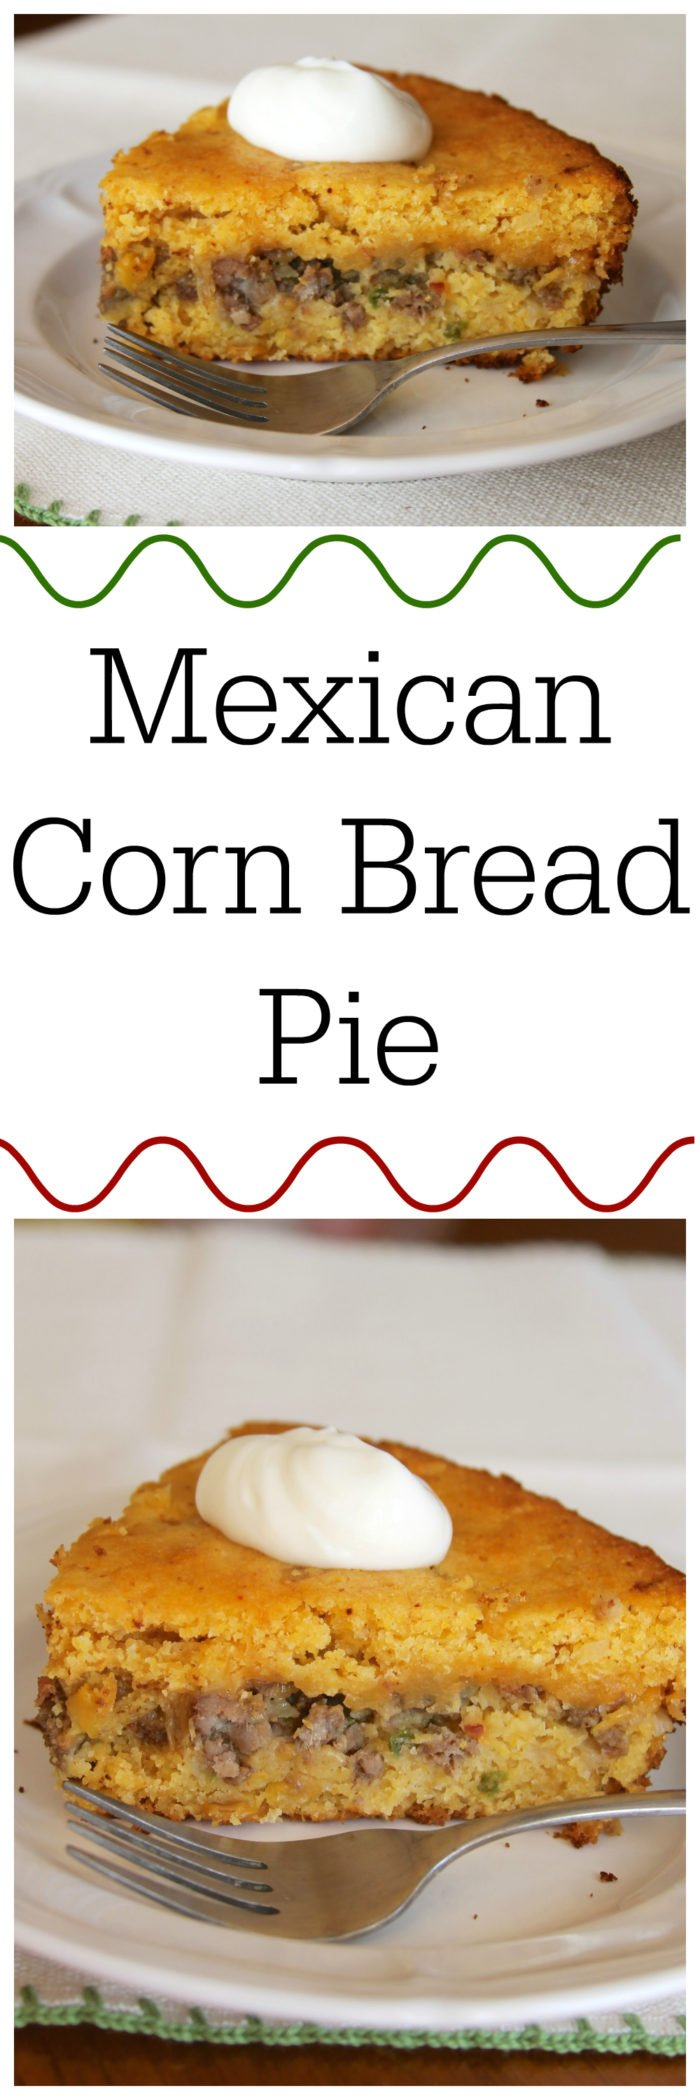 Our Mexican Cornbread Pie Recipe is a delicious twist on the classic shephard's pie using jiffy cornbread and it's a one-dish dinner! by cookingwithruthie.com